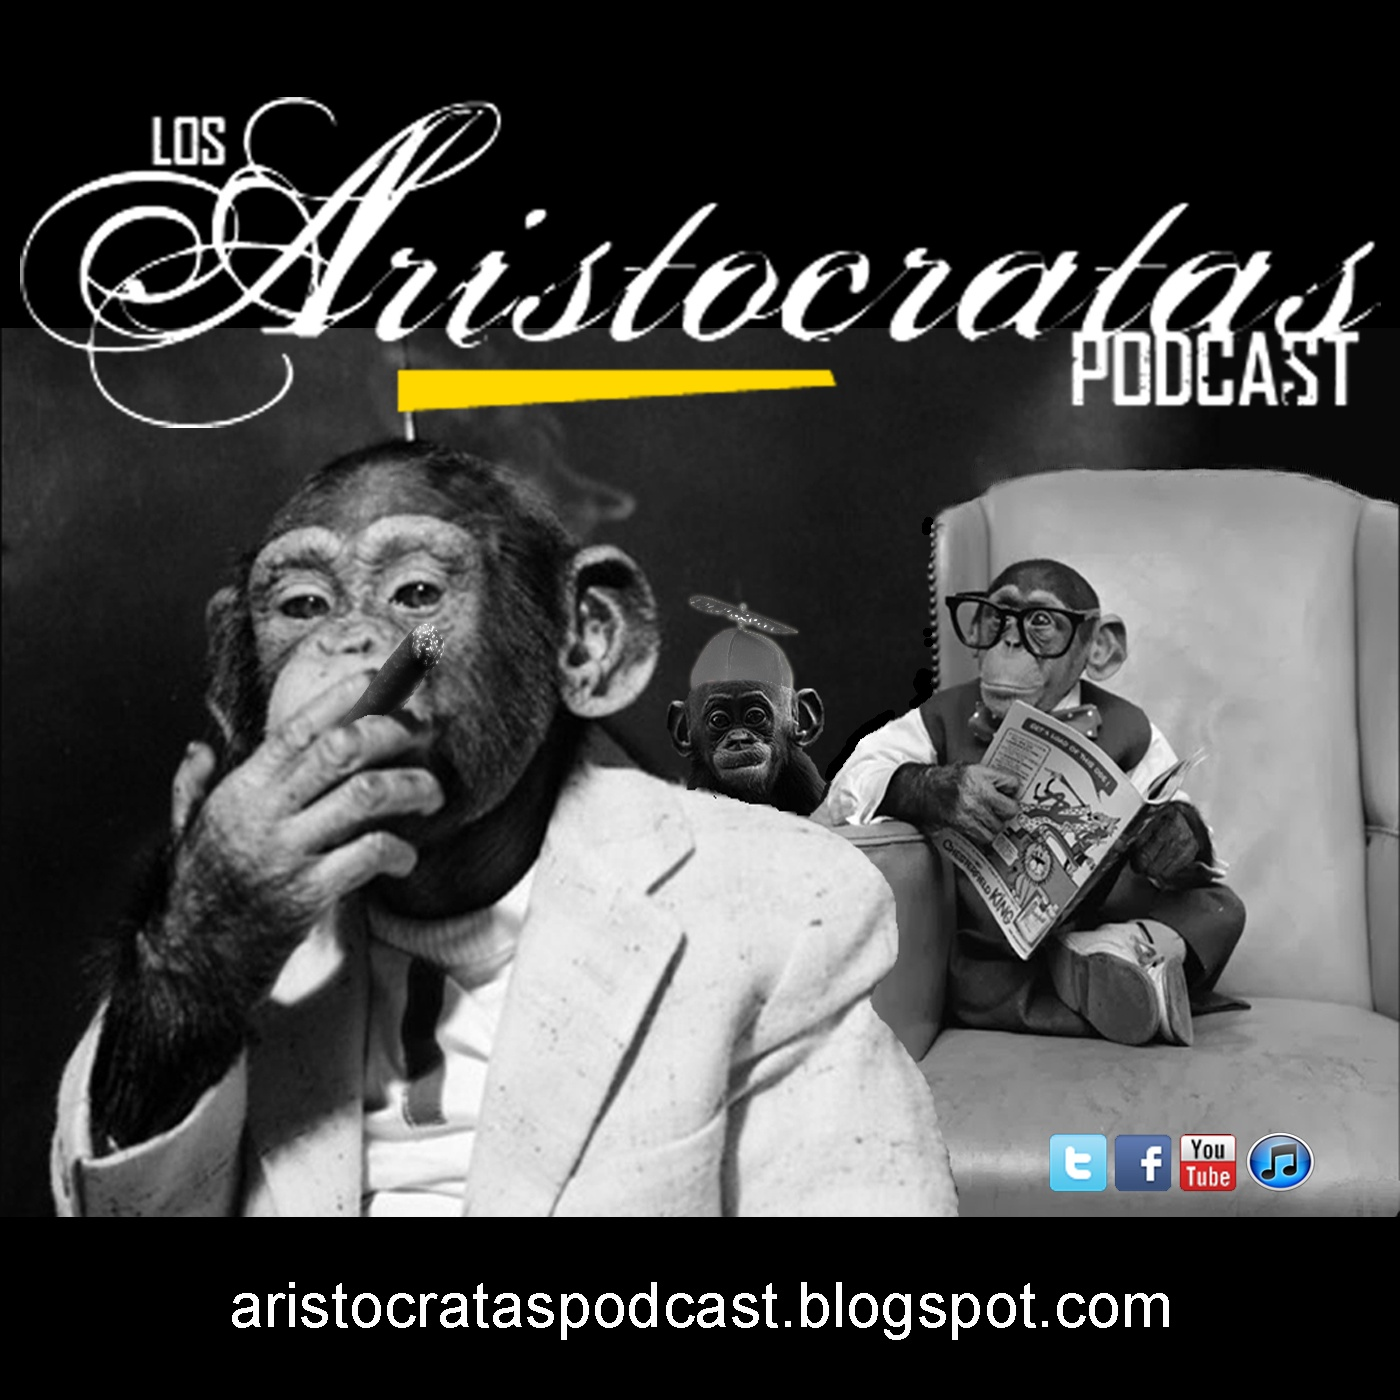 Los Aristocratas Podcast